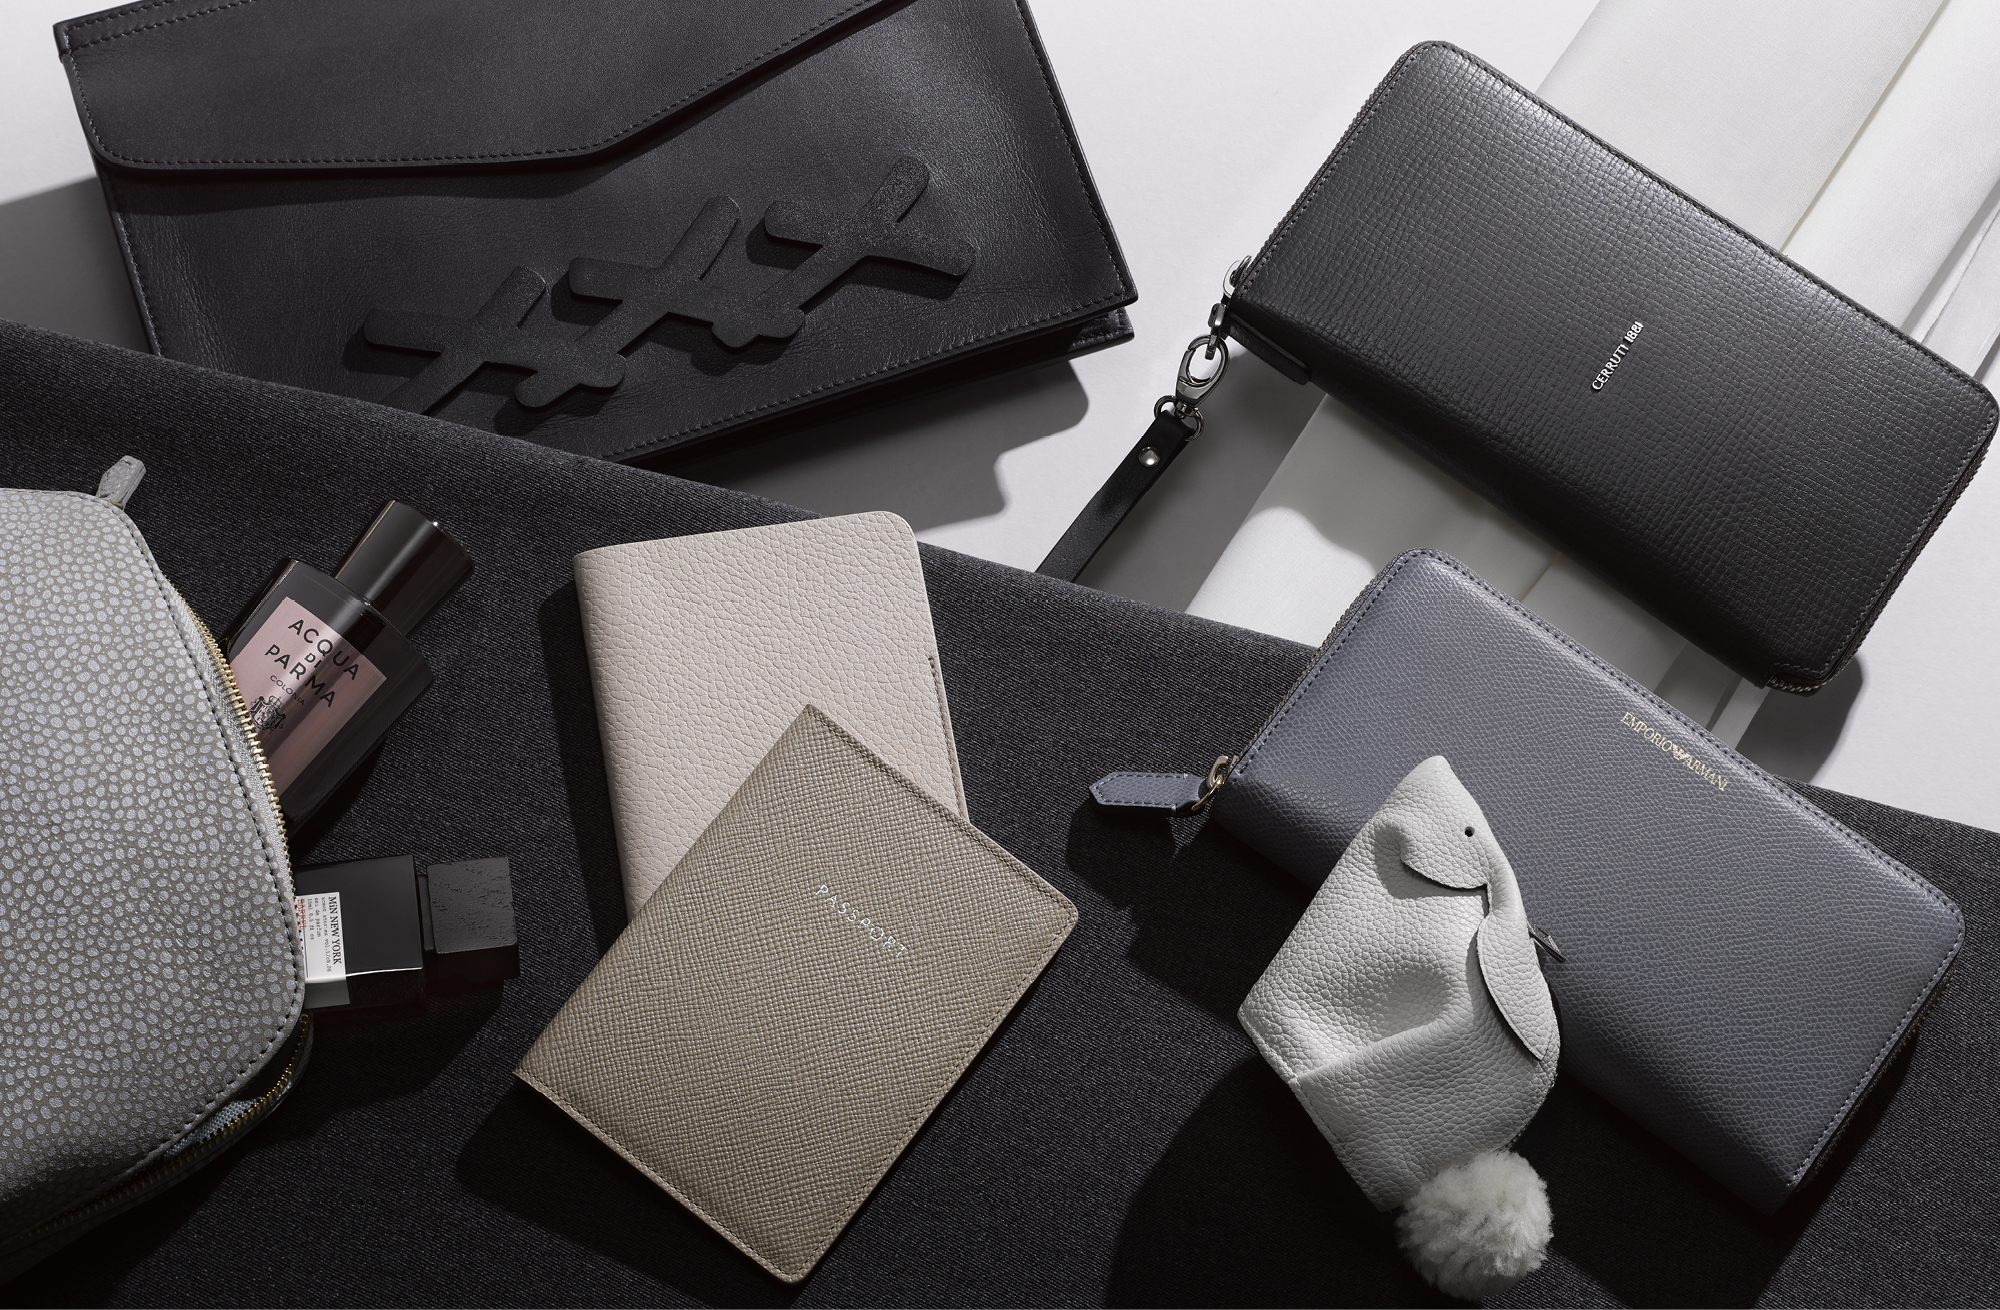 Clockwise from top left: Envelope bag, £1,190, E ZEGNA; leather wallet, £200, CERRUTI; zip wallet, £180, EMPORIO ARMANI; coin pouch, £295, LOEWE; Jet'and Propellor passport sleeves, £165 and £125, GLOBE-TROTTER; cosmetic bag, £135, PADFIELD; Colonia Leather EDC, £179 for 100ml, ACQUA DI PARMA; Scent Stories Barrel EDP, £220 for 75ml, MiN NEW YORK